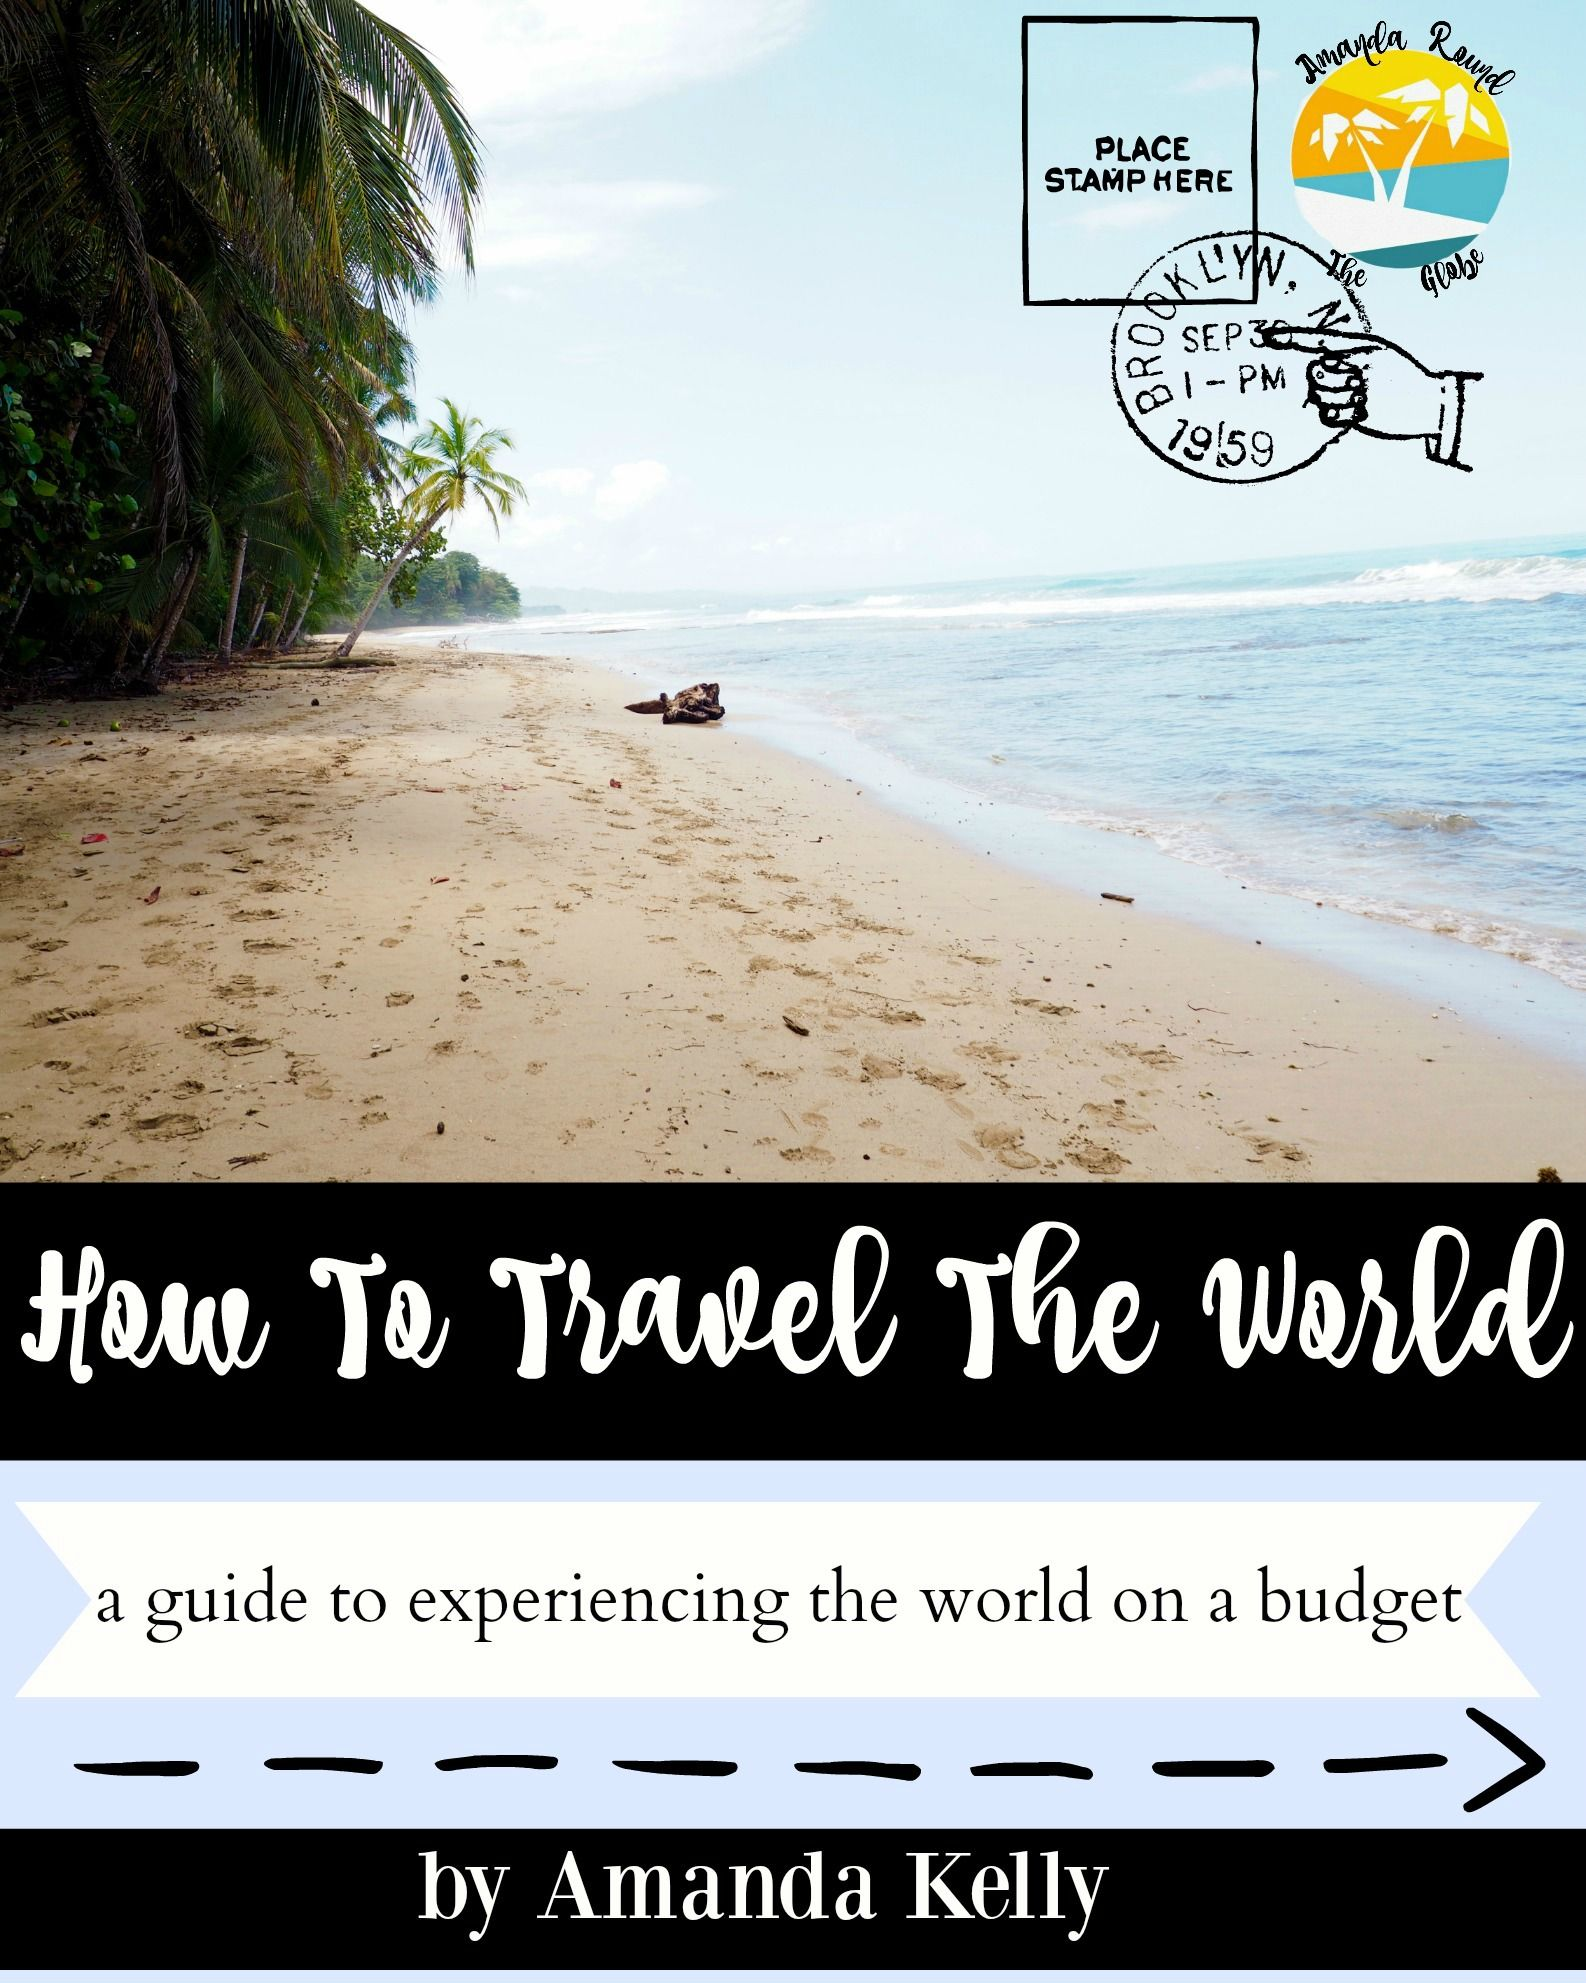 How To Travel The World A Guide To Experiencing The World